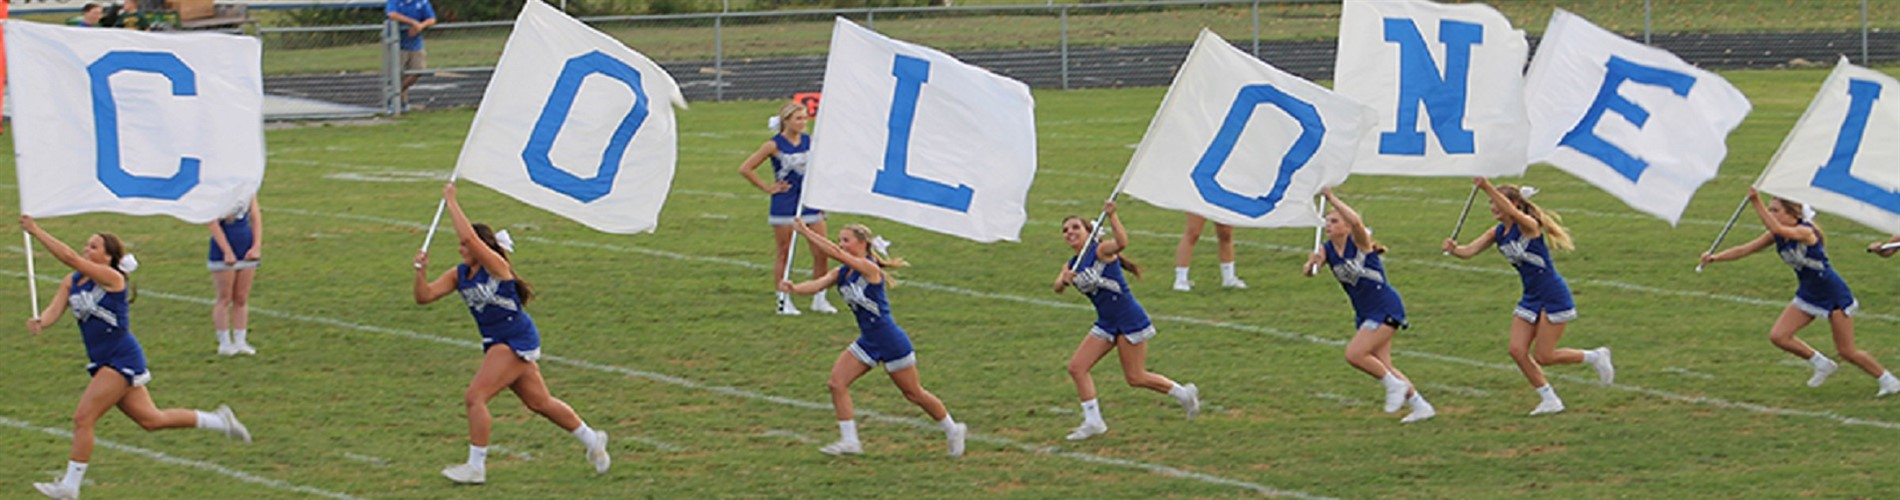 OCHS Cheerleaders running with COLONEL flags